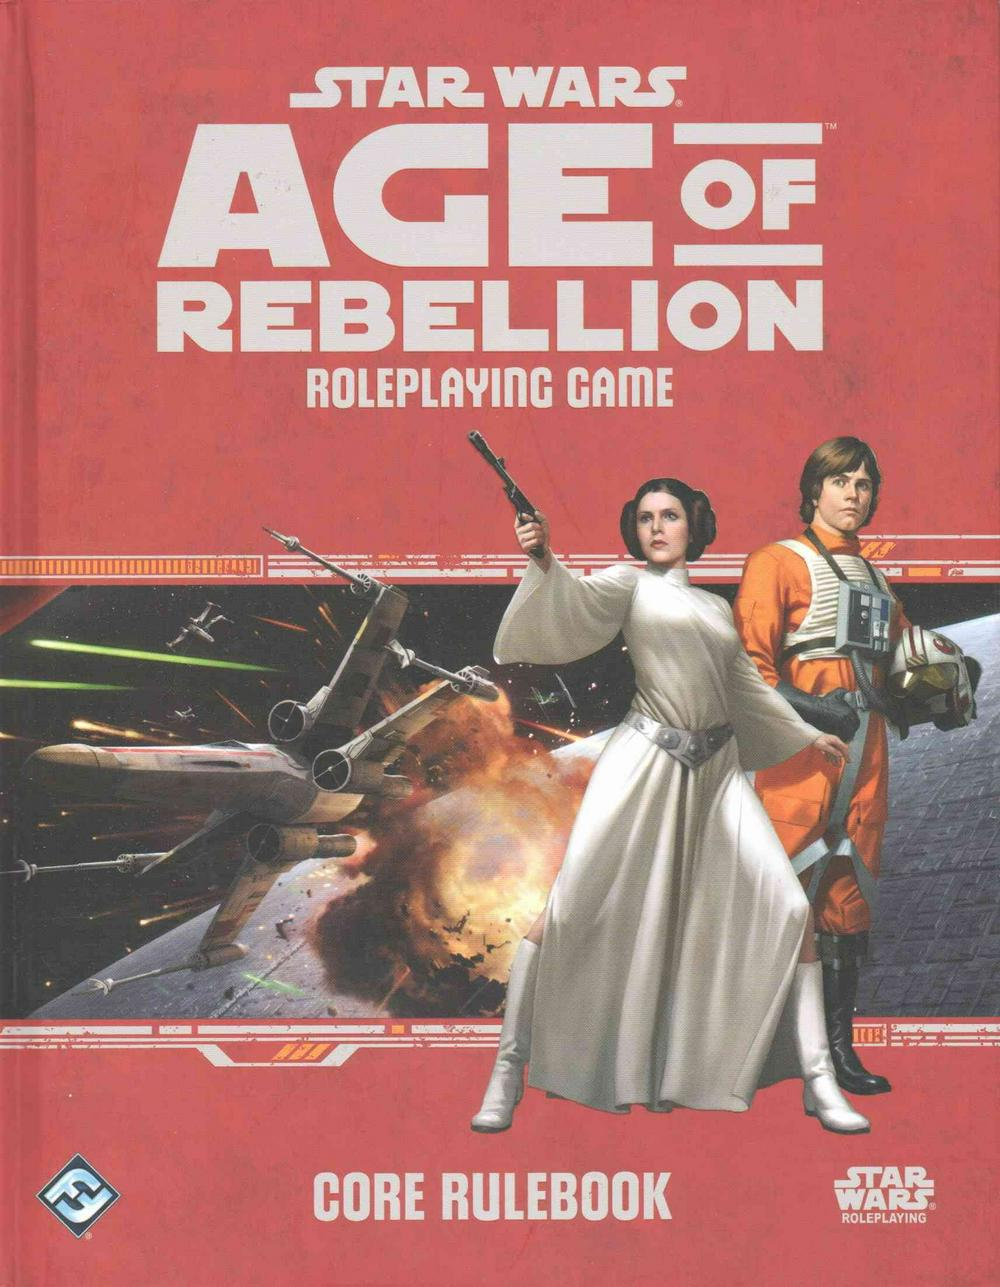 Star Wars: Age of Rebellion RPG Core Rulebook